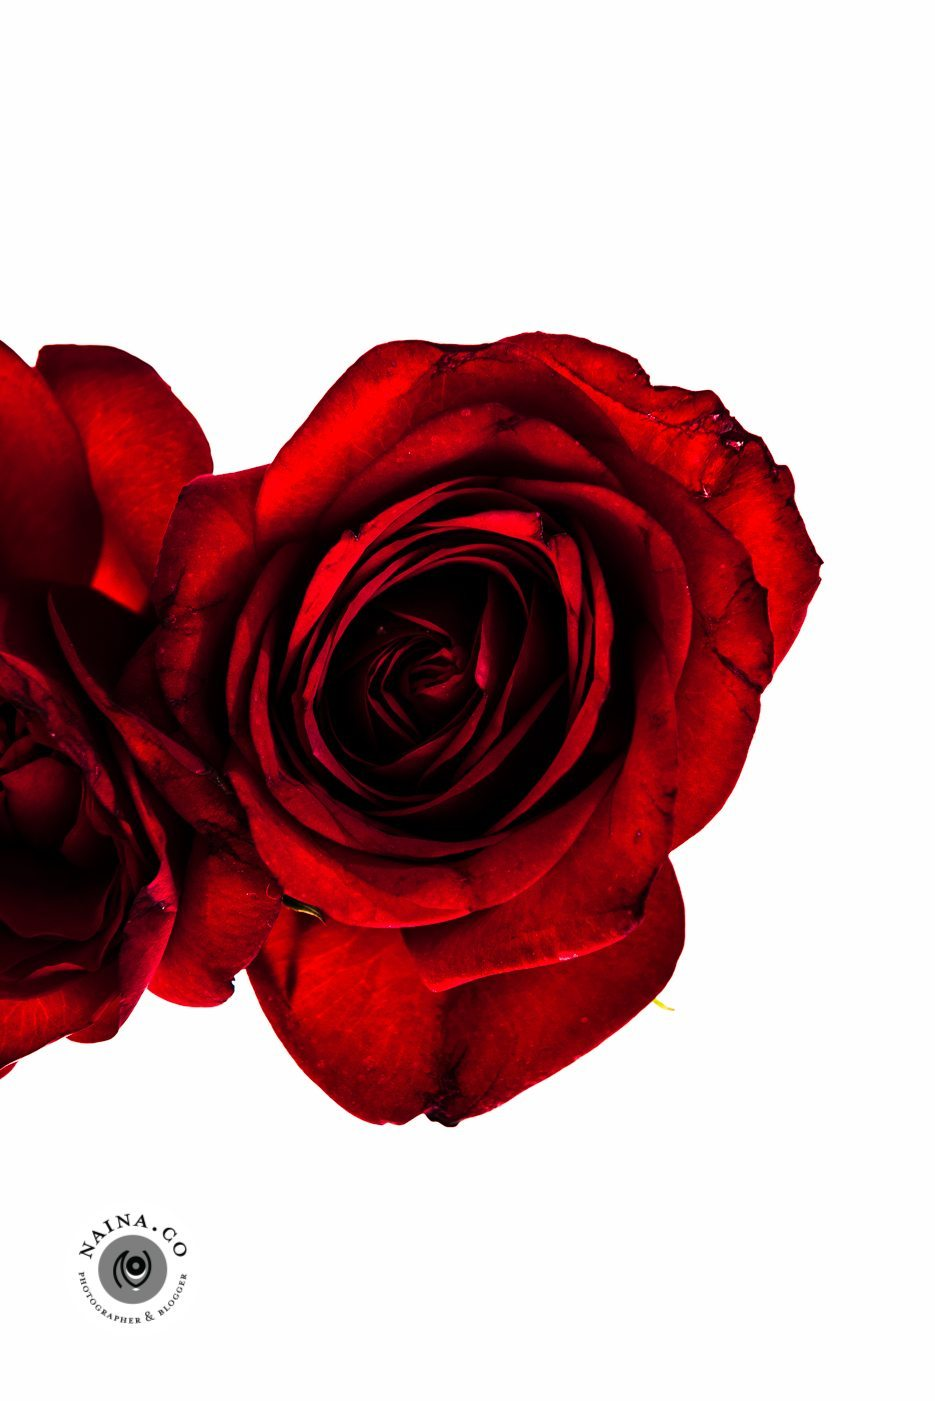 Naina.co-Raconteuse-Visuelle-Photographer-Blogger-Storyteller-Luxury-Lifestyle-March-2015-Roses-Art-Prints